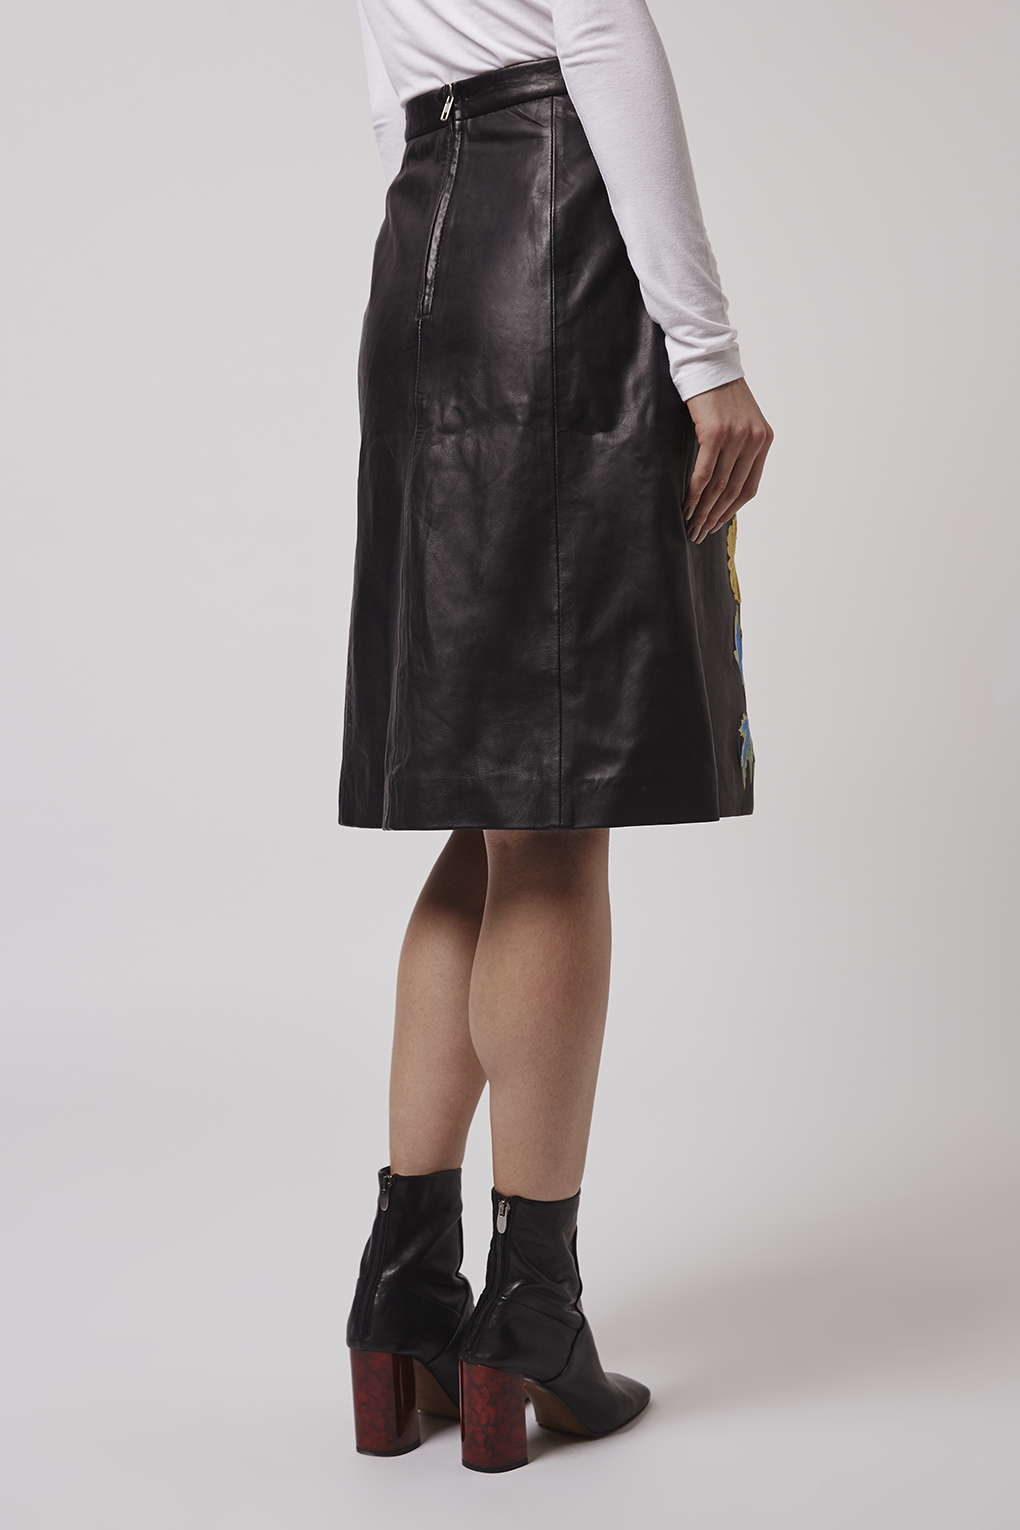 topshop embroidered leather midi skirt in black lyst